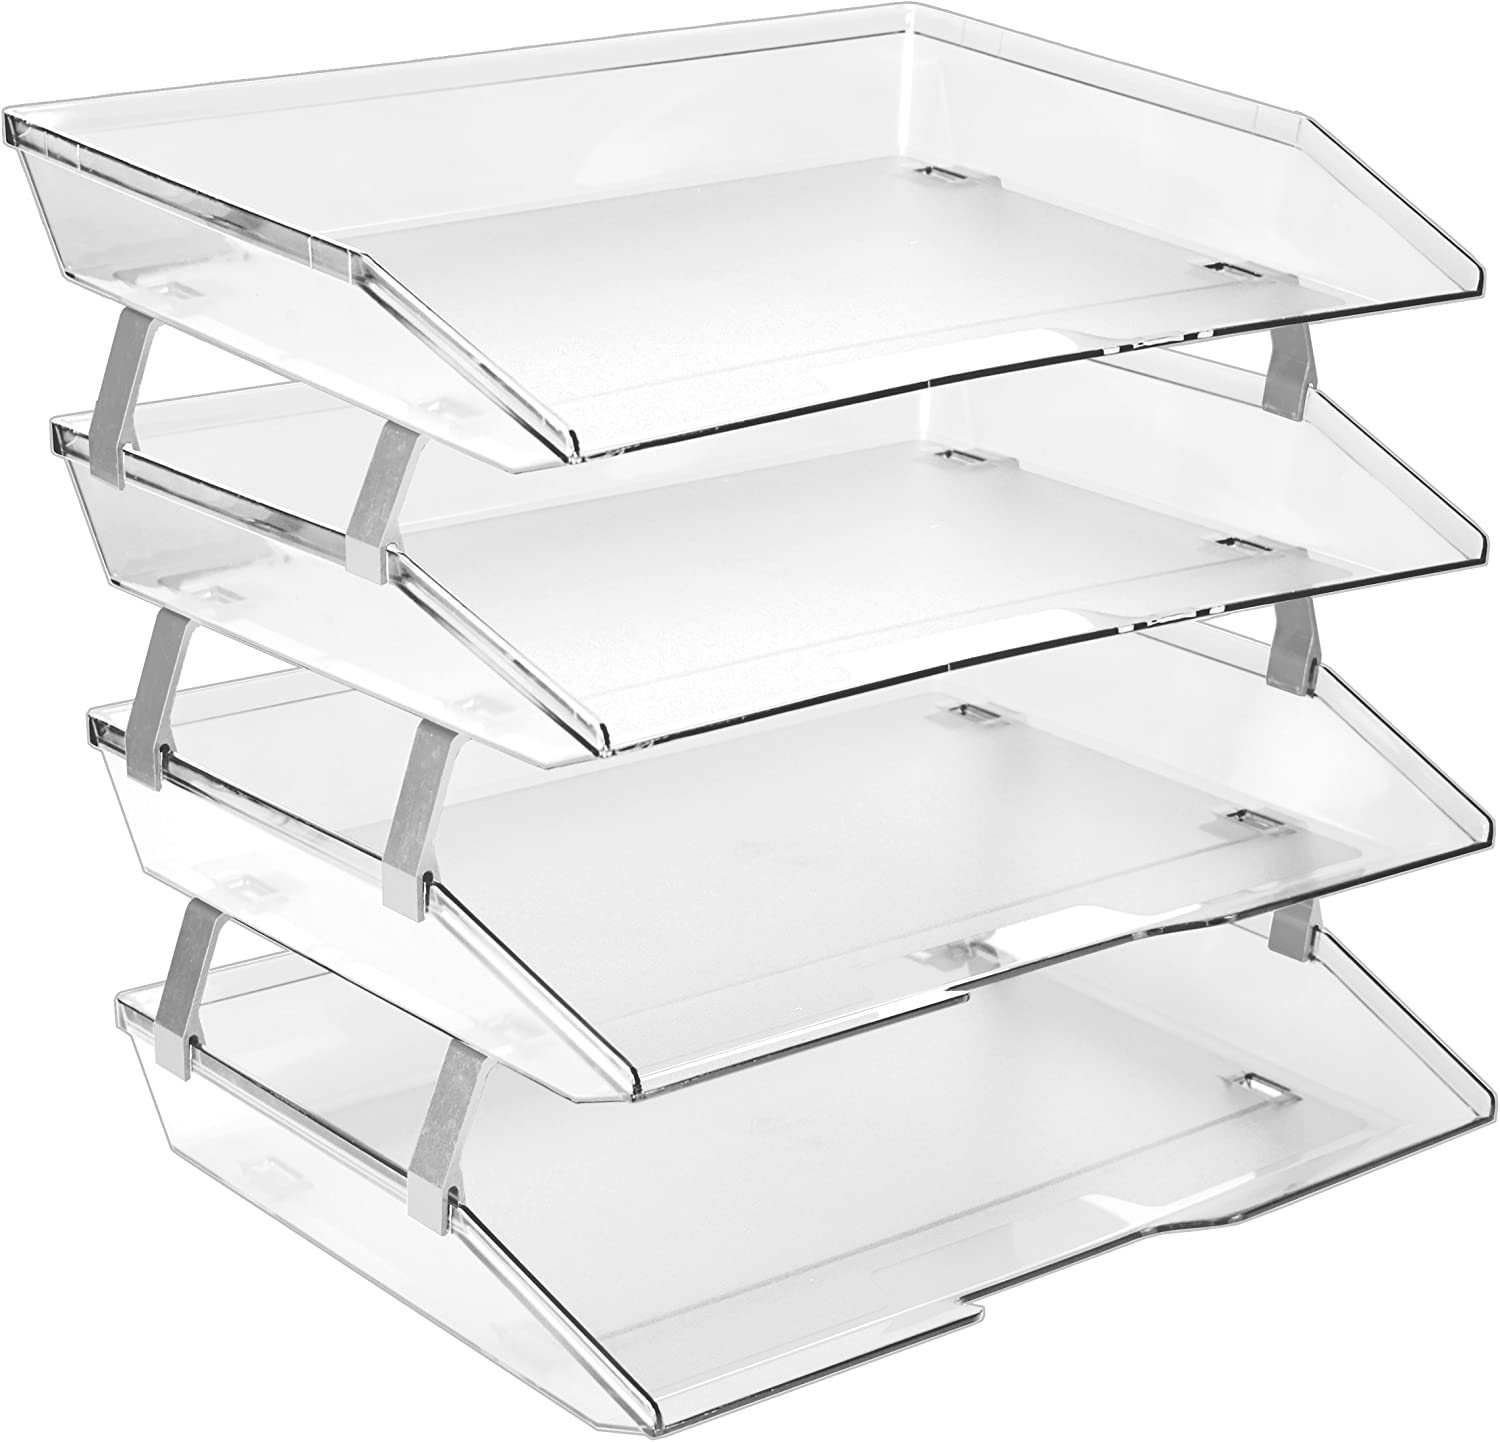 Acrimet Facility 4 Tier Letter Tray Side Load Plastic Desktop File Organizer (Clear Crystal Color)